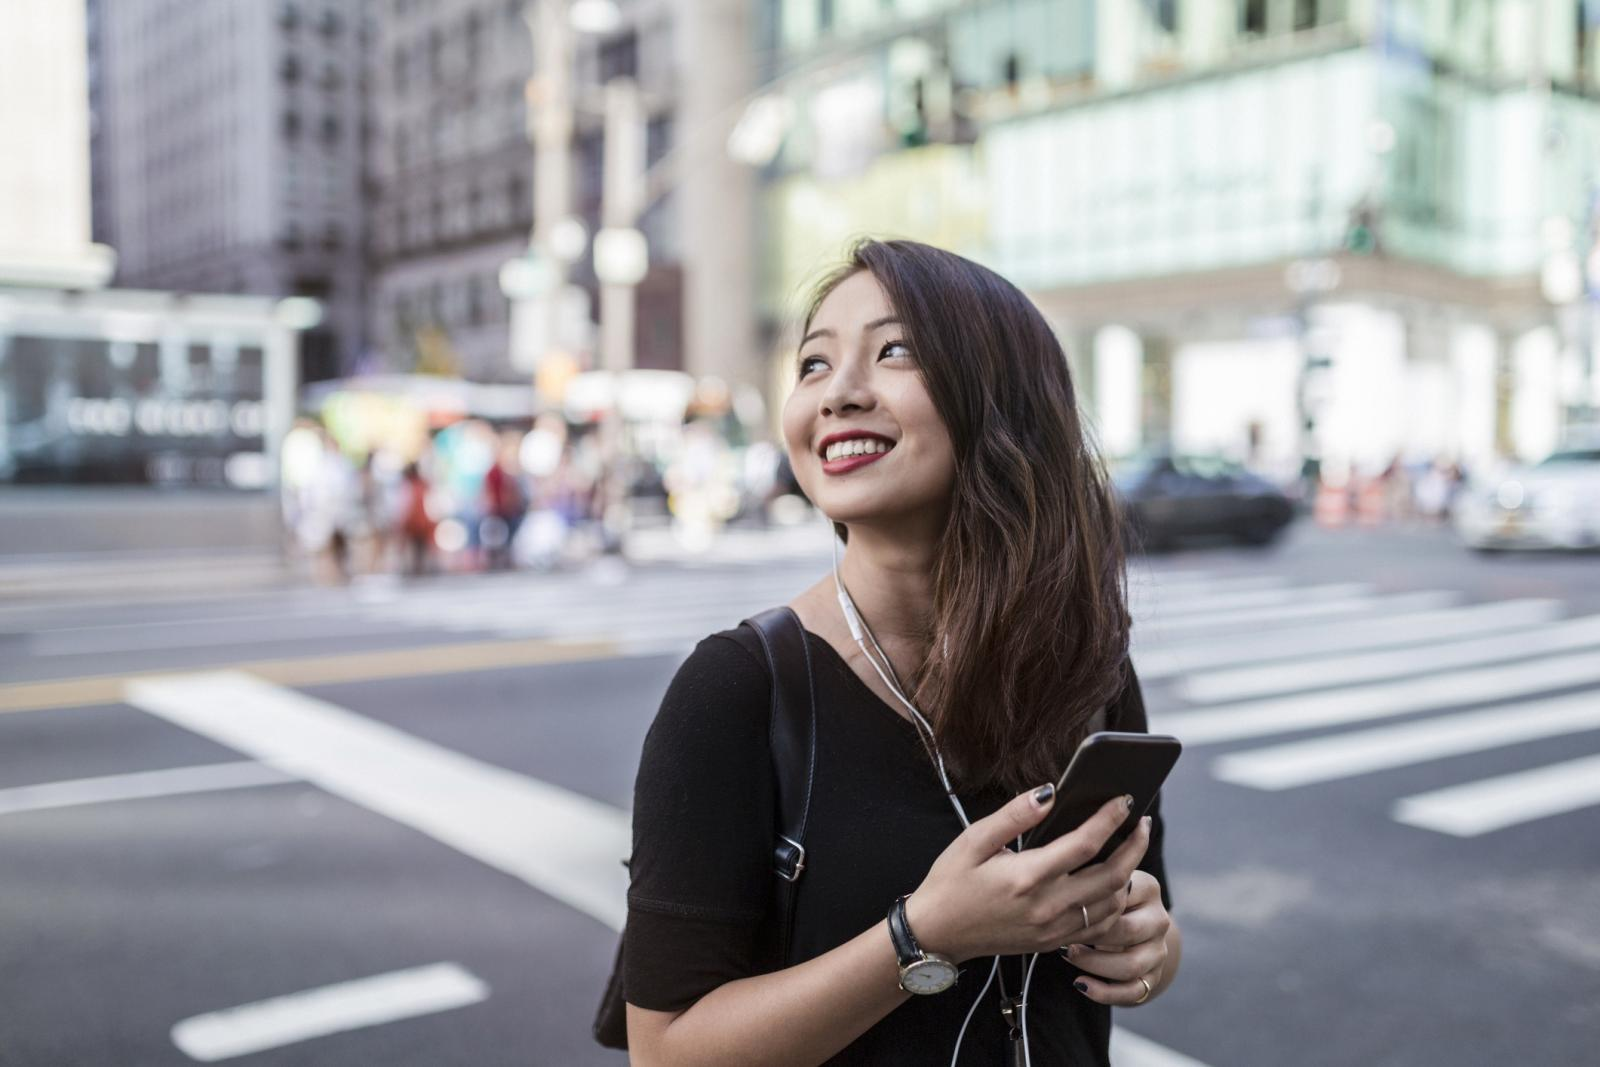 Young woman with cellphone on the street